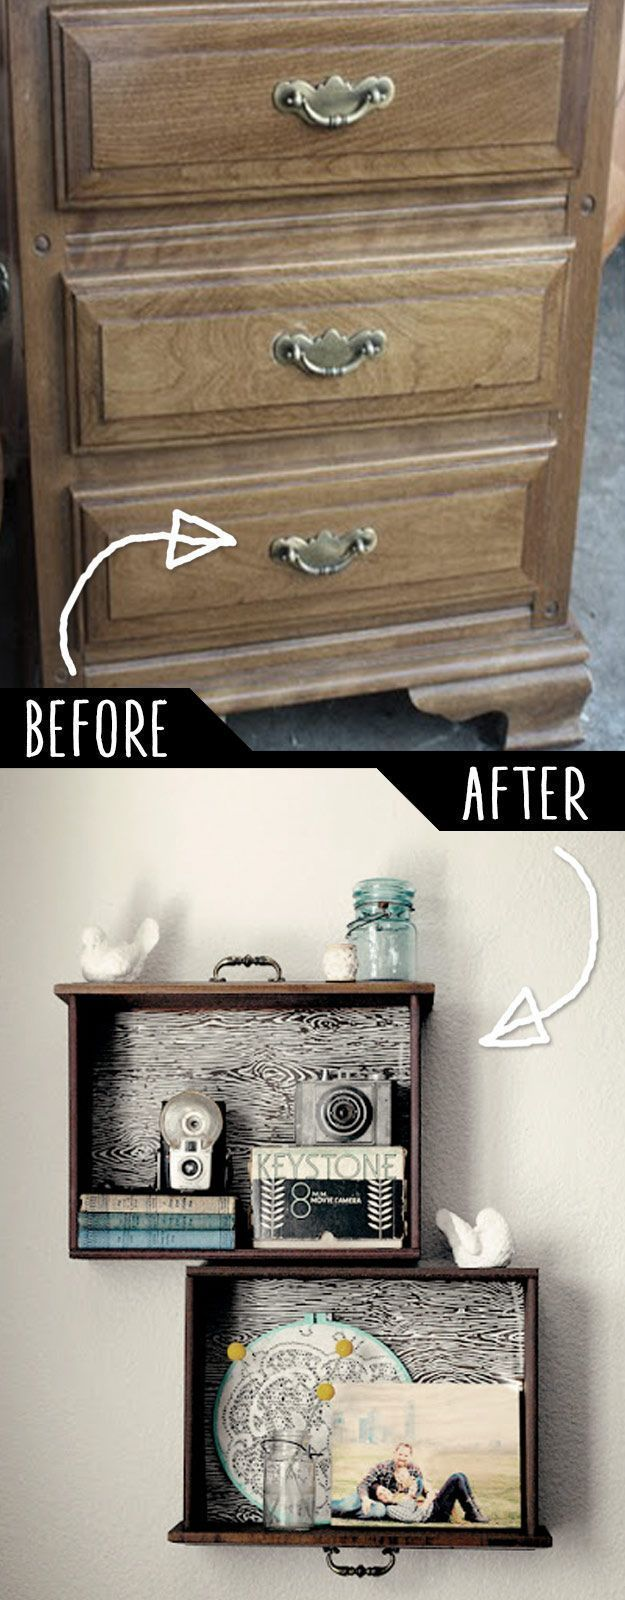 39 Clevere DIY-Möbel-Hacks – #Clevere #DIYMöbelHacks #forbedroom